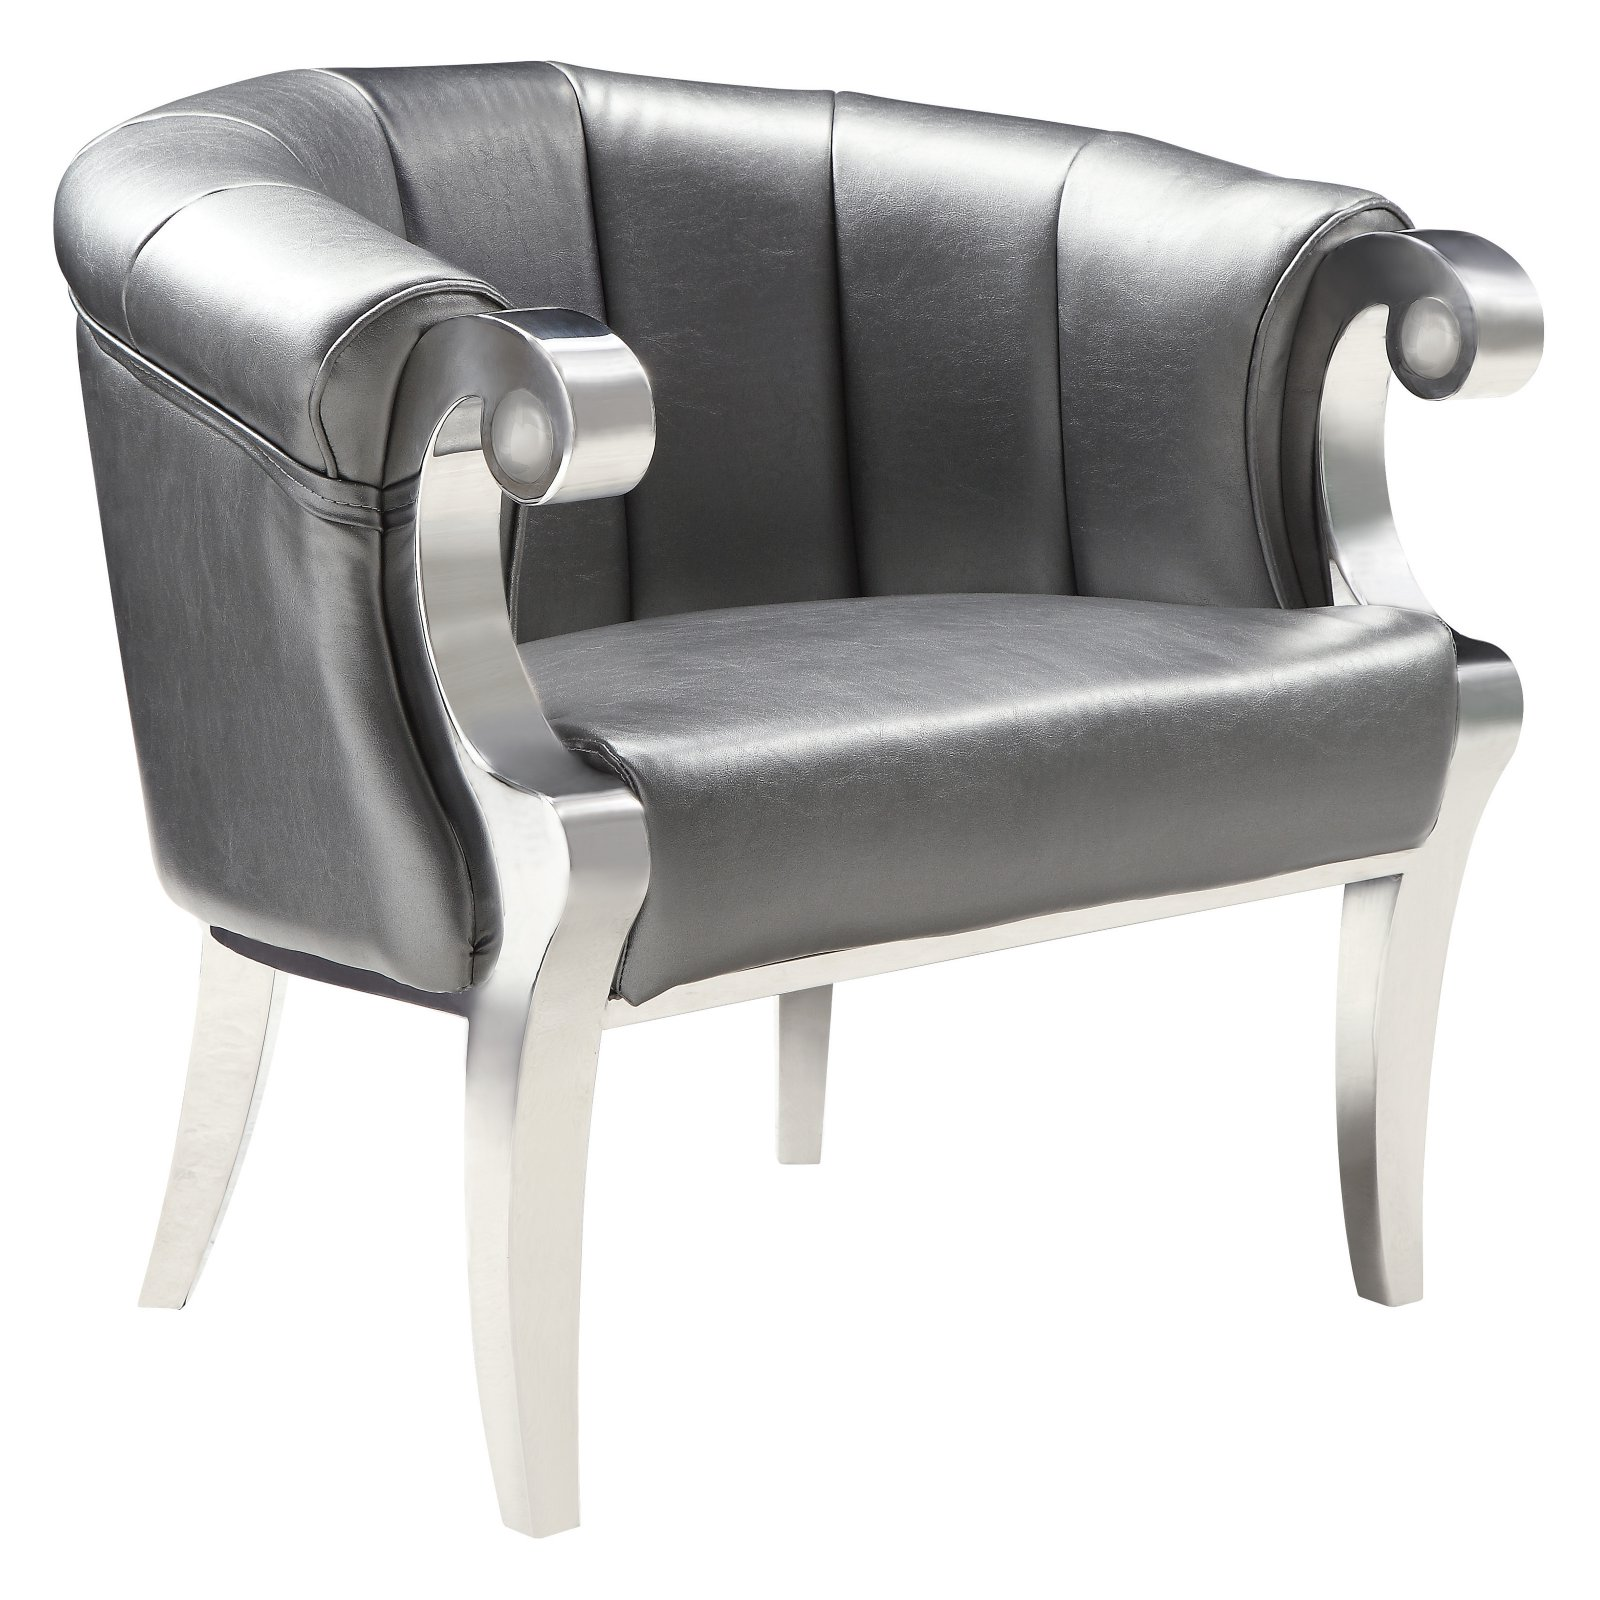 Stupendous Coaster Furniture Metal Barrel Accent Chair Products In Uwap Interior Chair Design Uwaporg